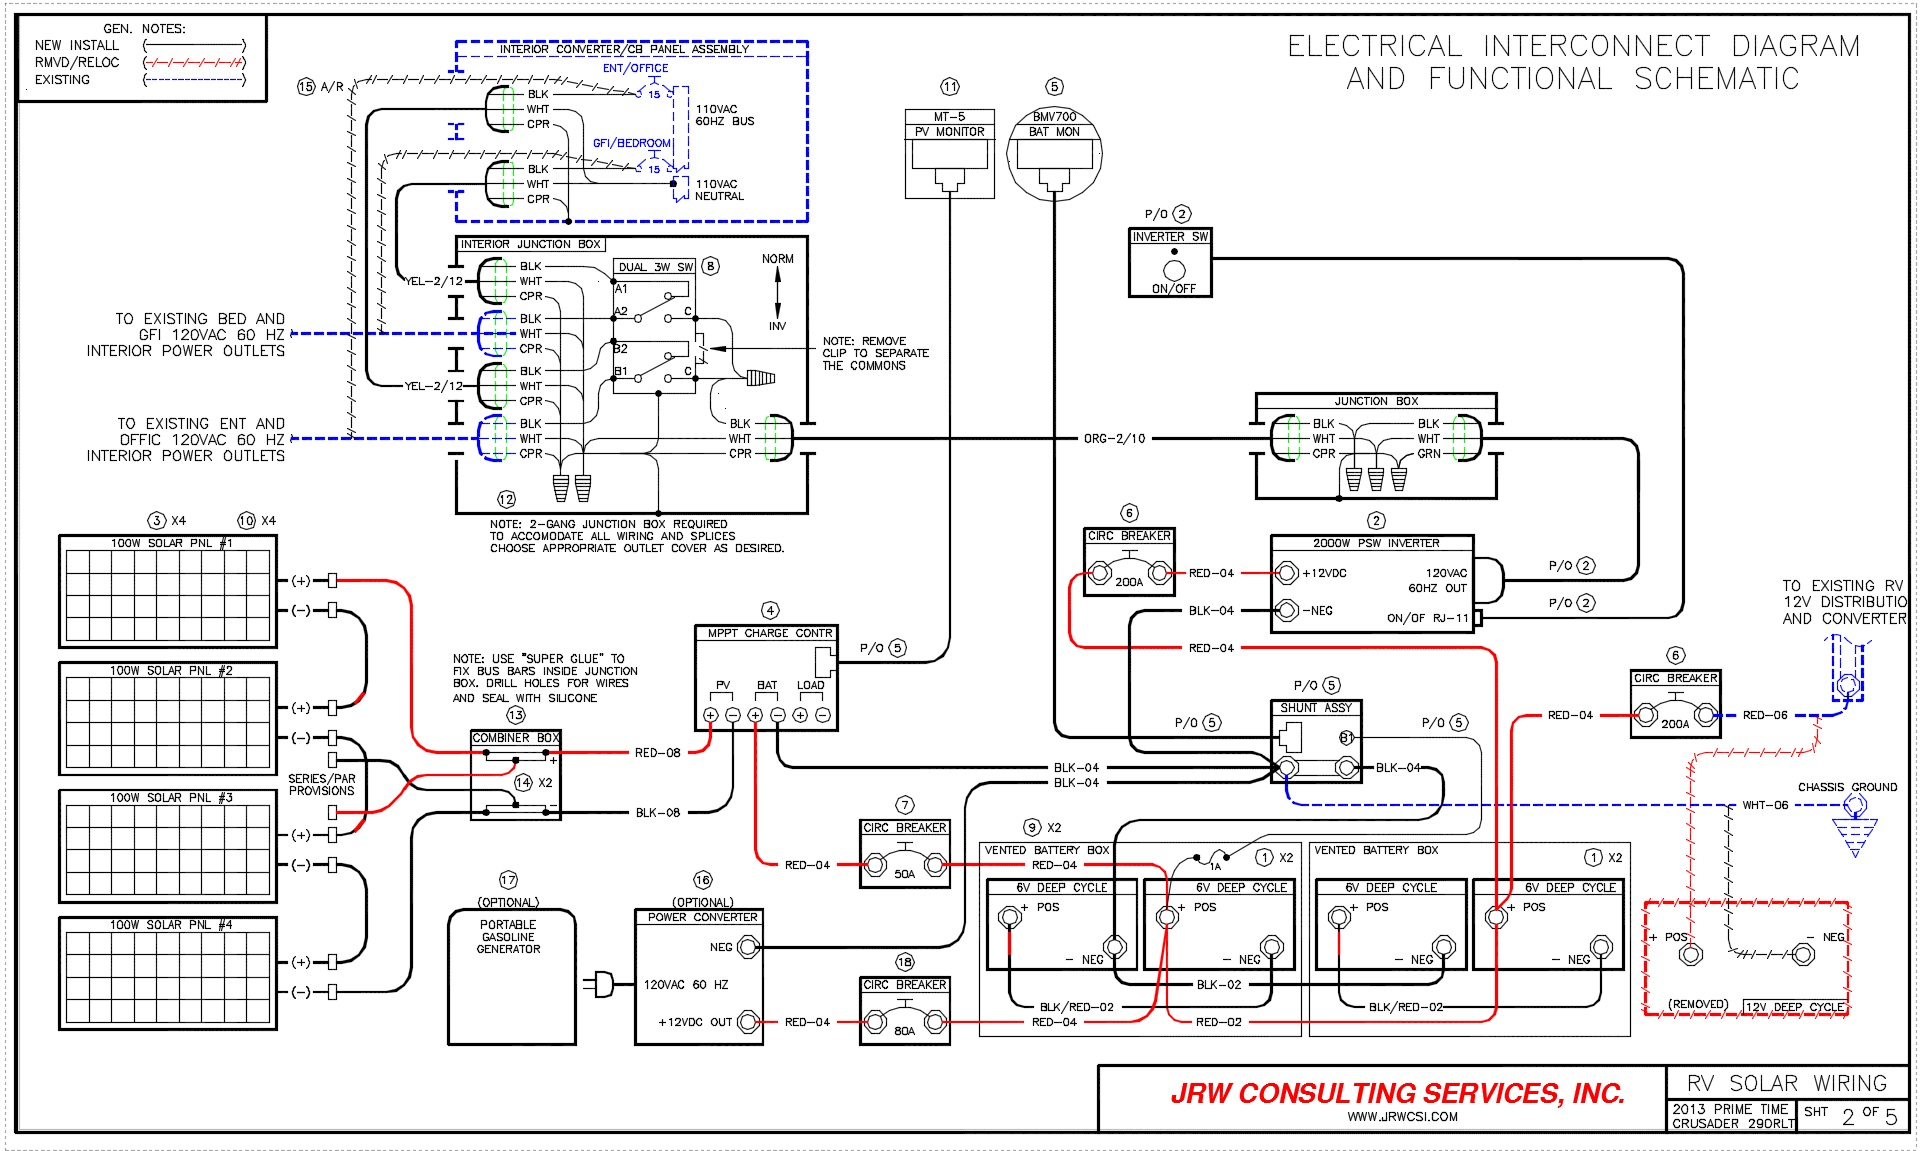 jayco trailer battery wiring diagram swot analysis template rv power upgrade - live, breathe, move